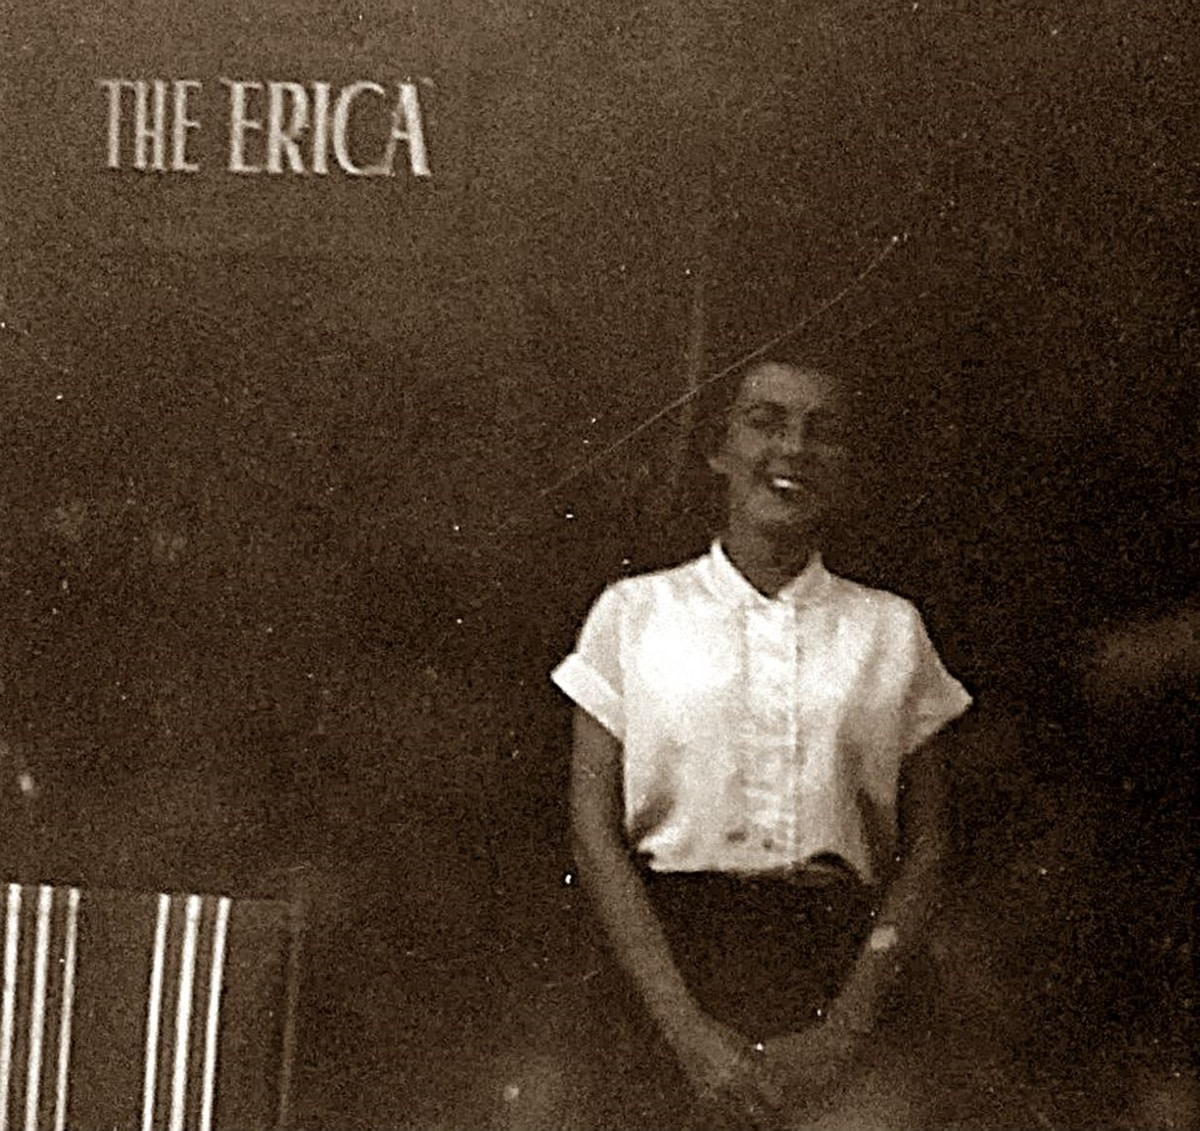 Mum as a young woman, posing outside grandma's B&B, The Erica.